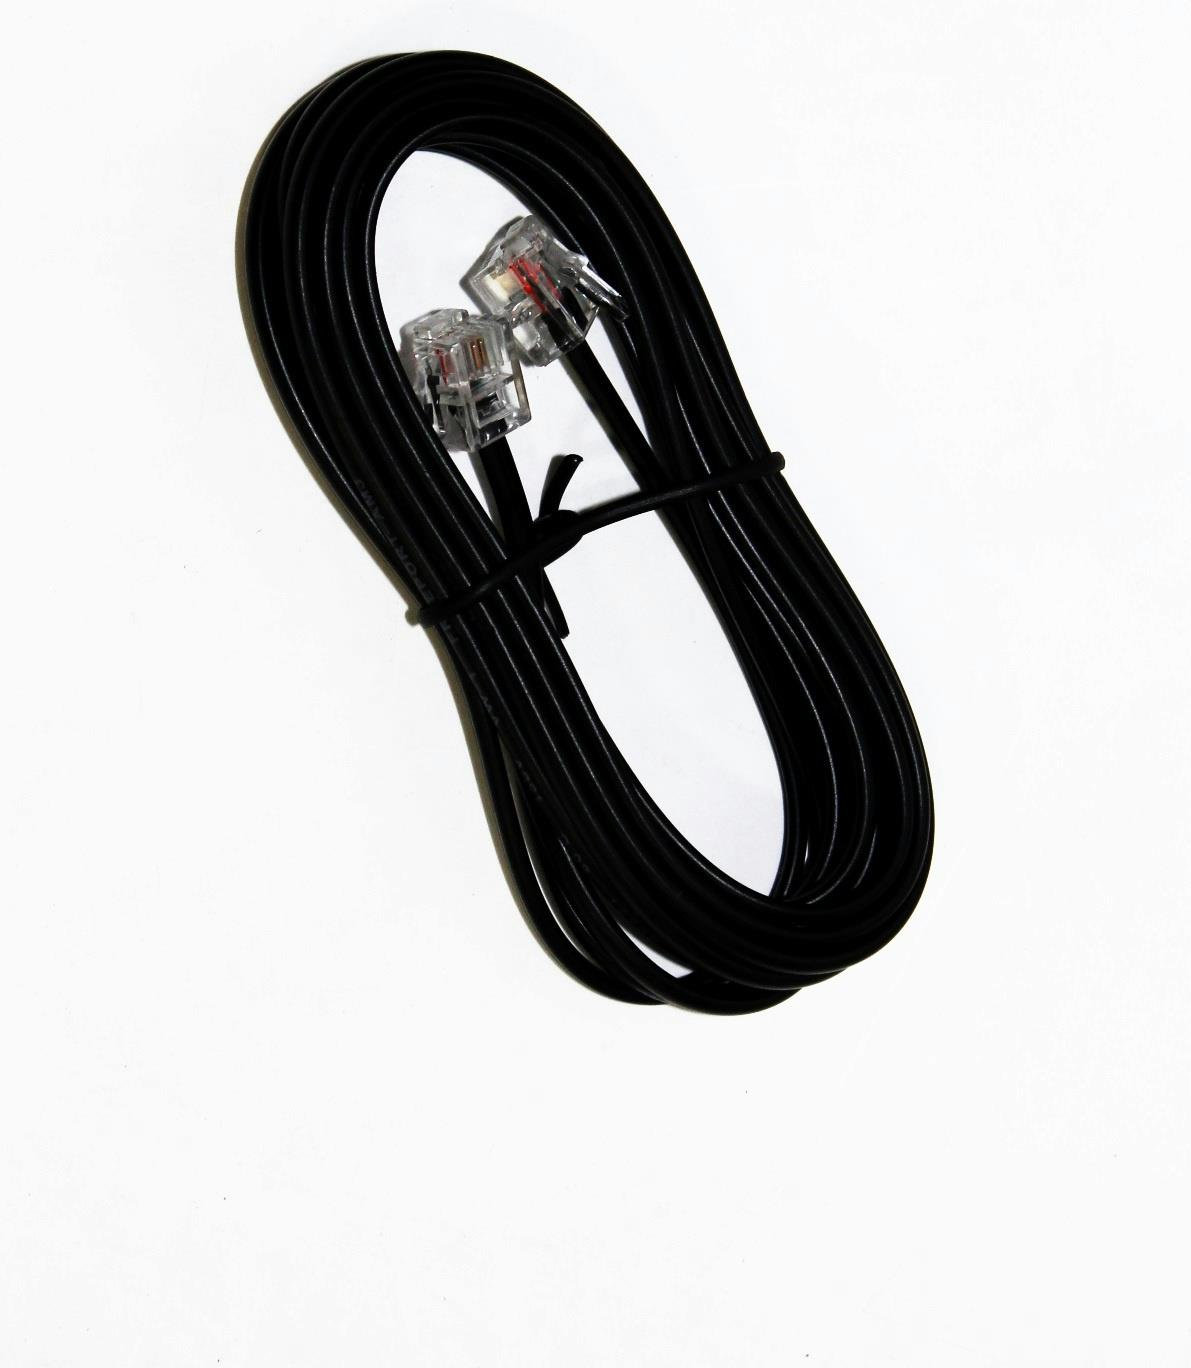 HP 8121-0811 Telephone cable (2-wire) - RJ11 (M) connectors - 3m ...